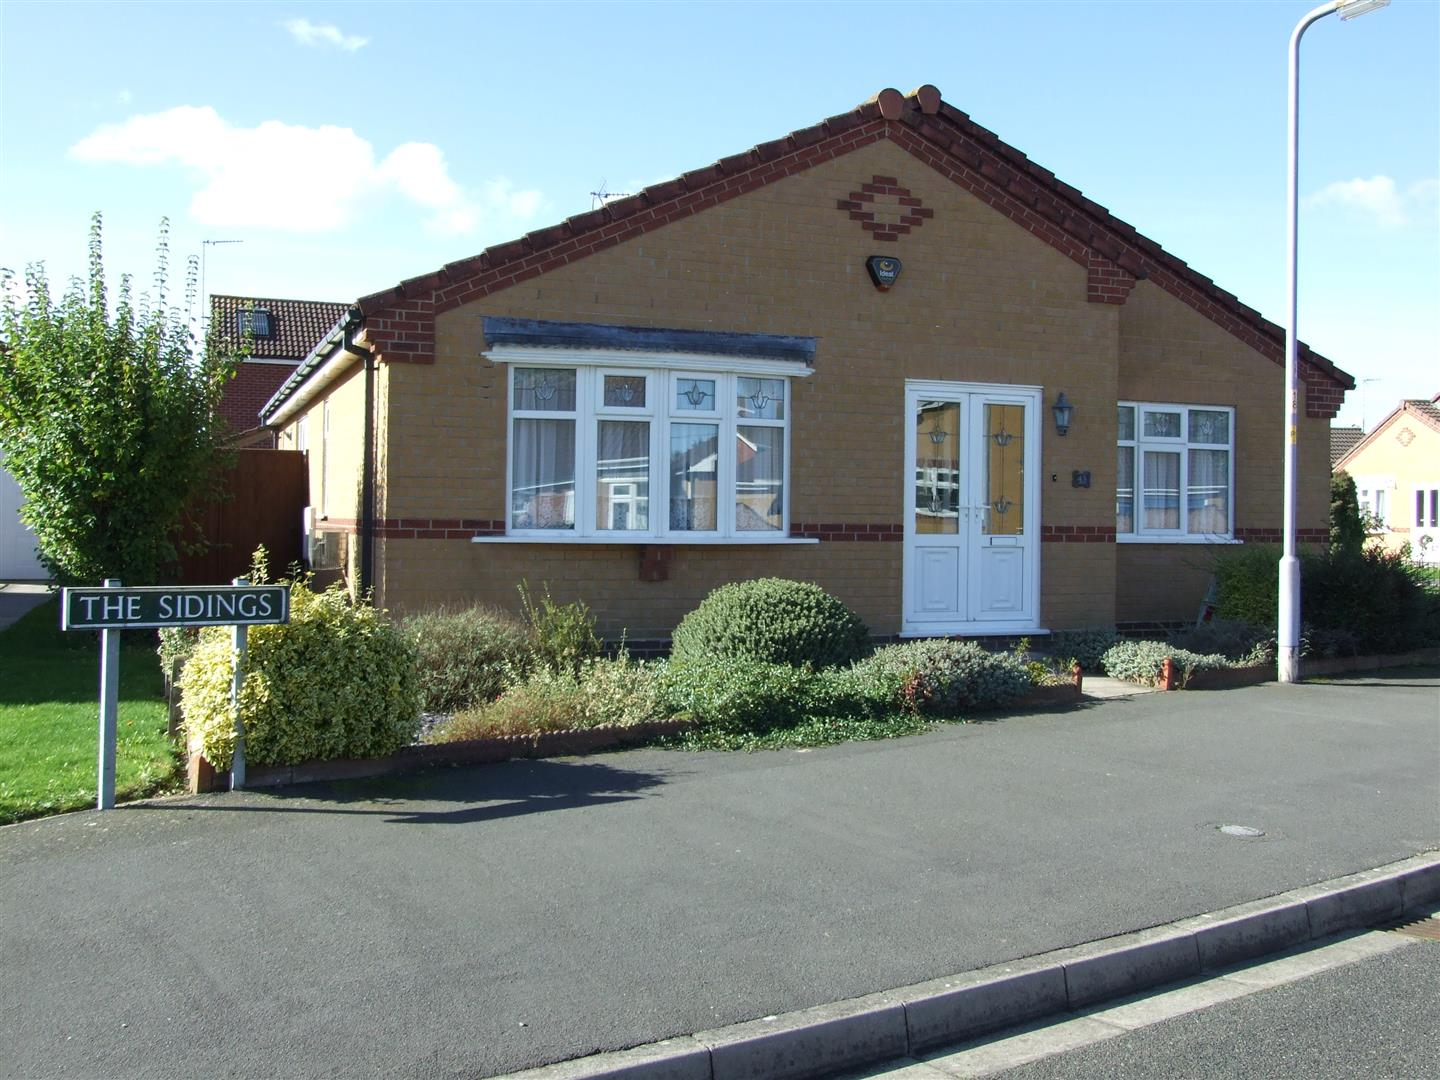 3 bed detached bungalow to rent in Spalding, PE12 9FA, PE12